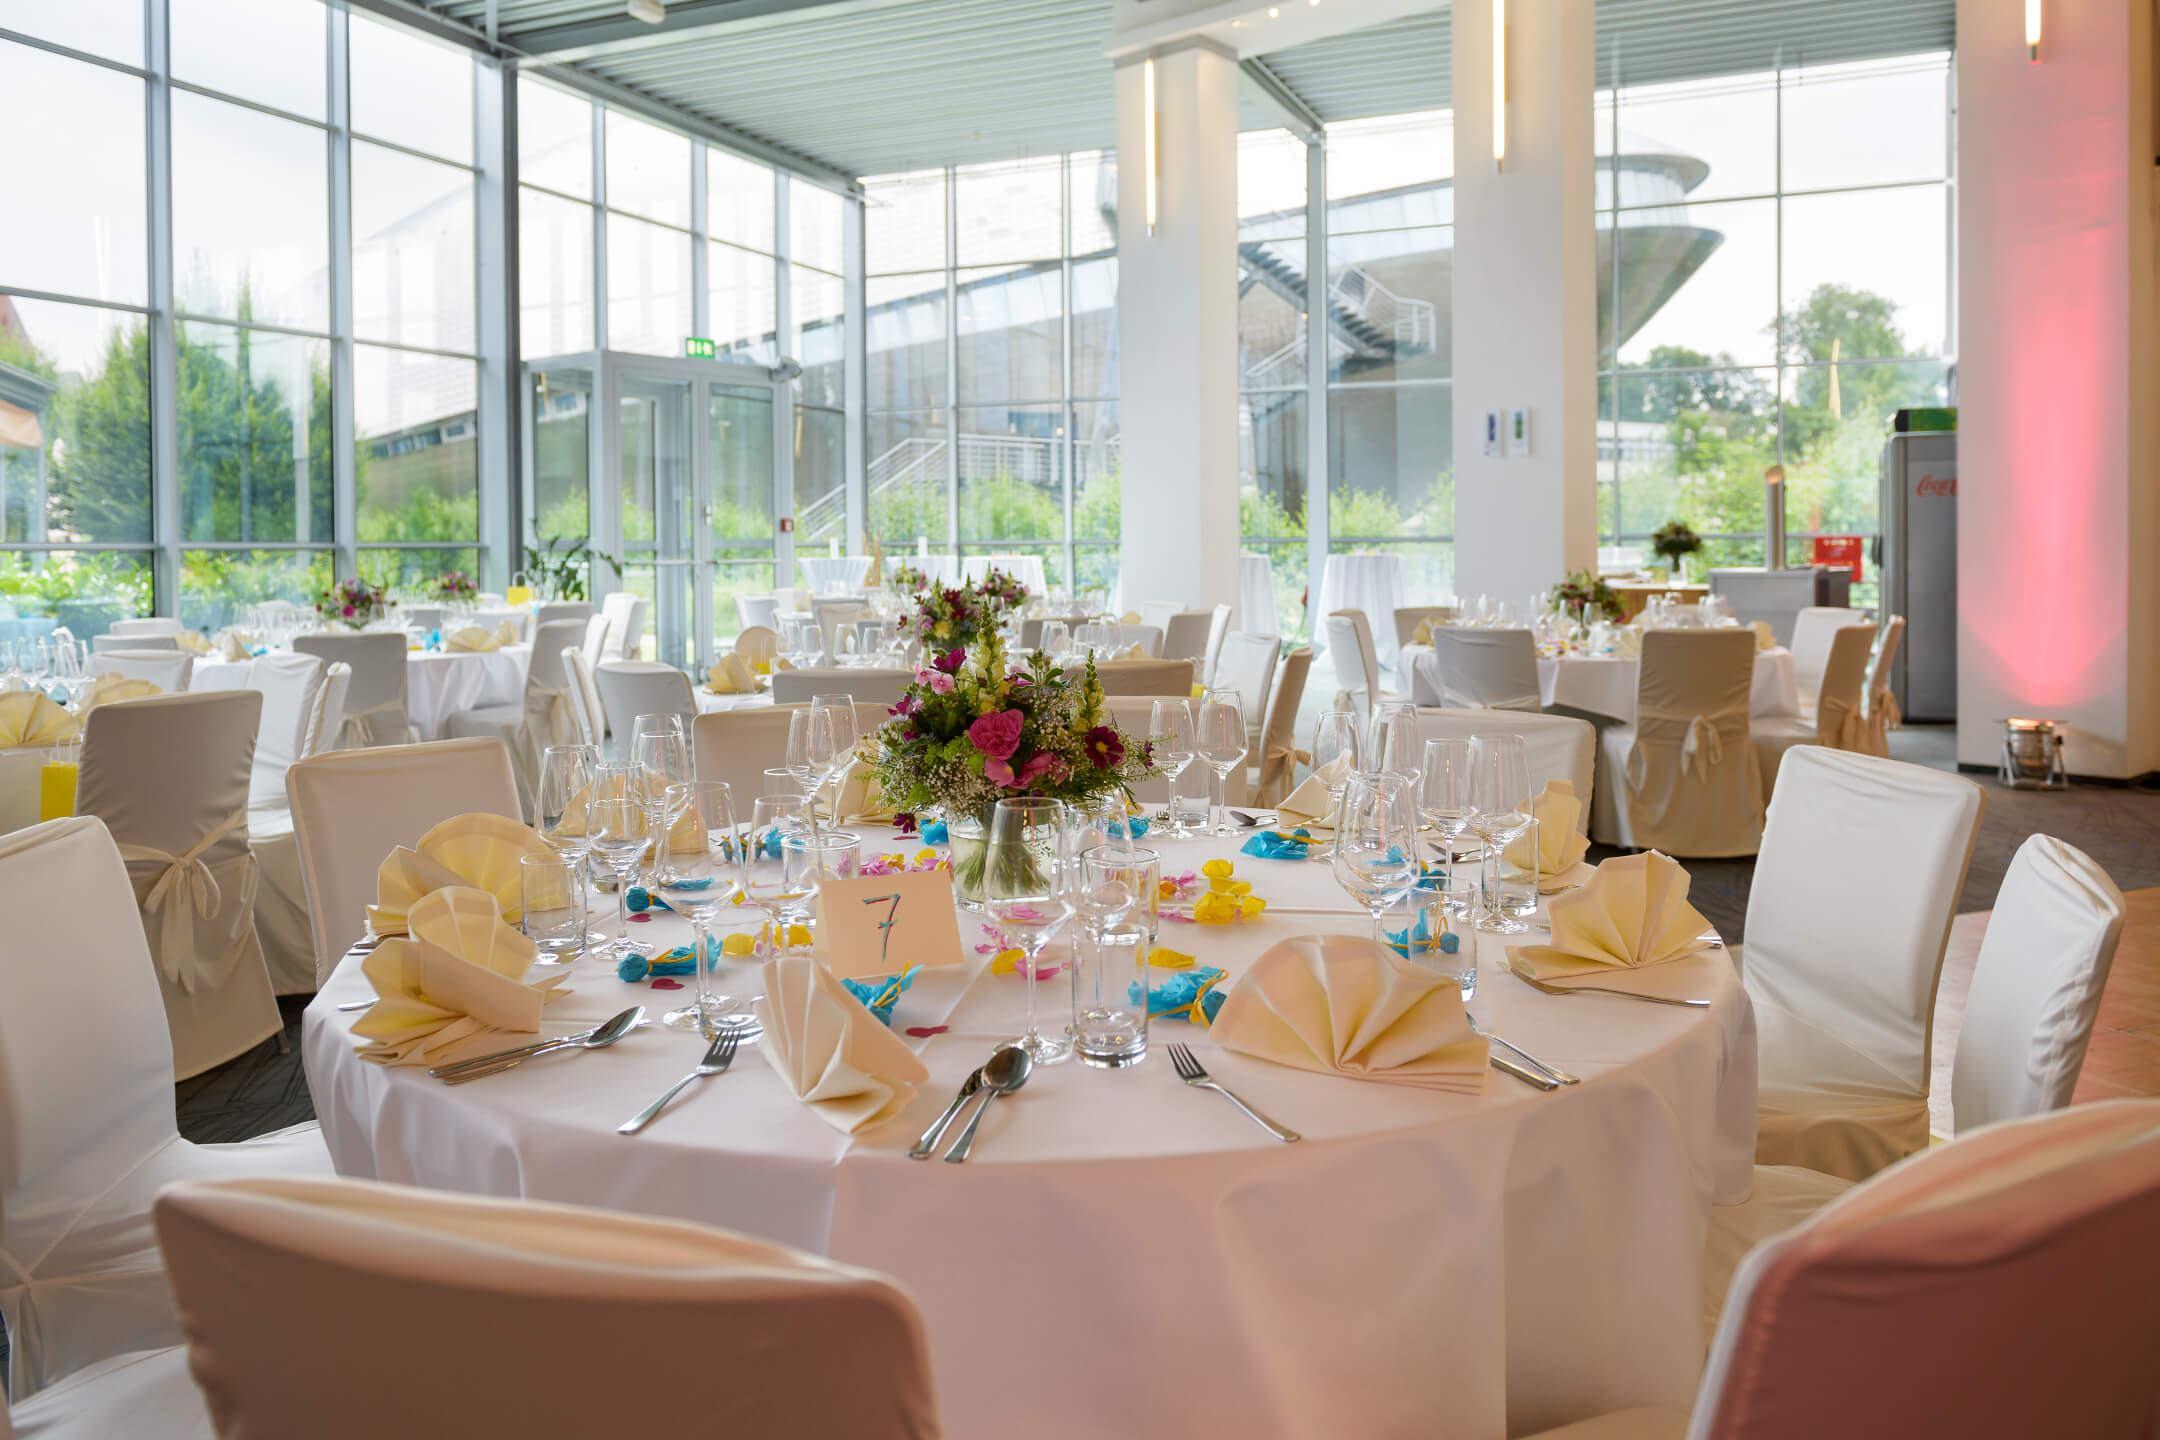 Celebrate weddings at ATLANTIC Hotel Universum Bremen